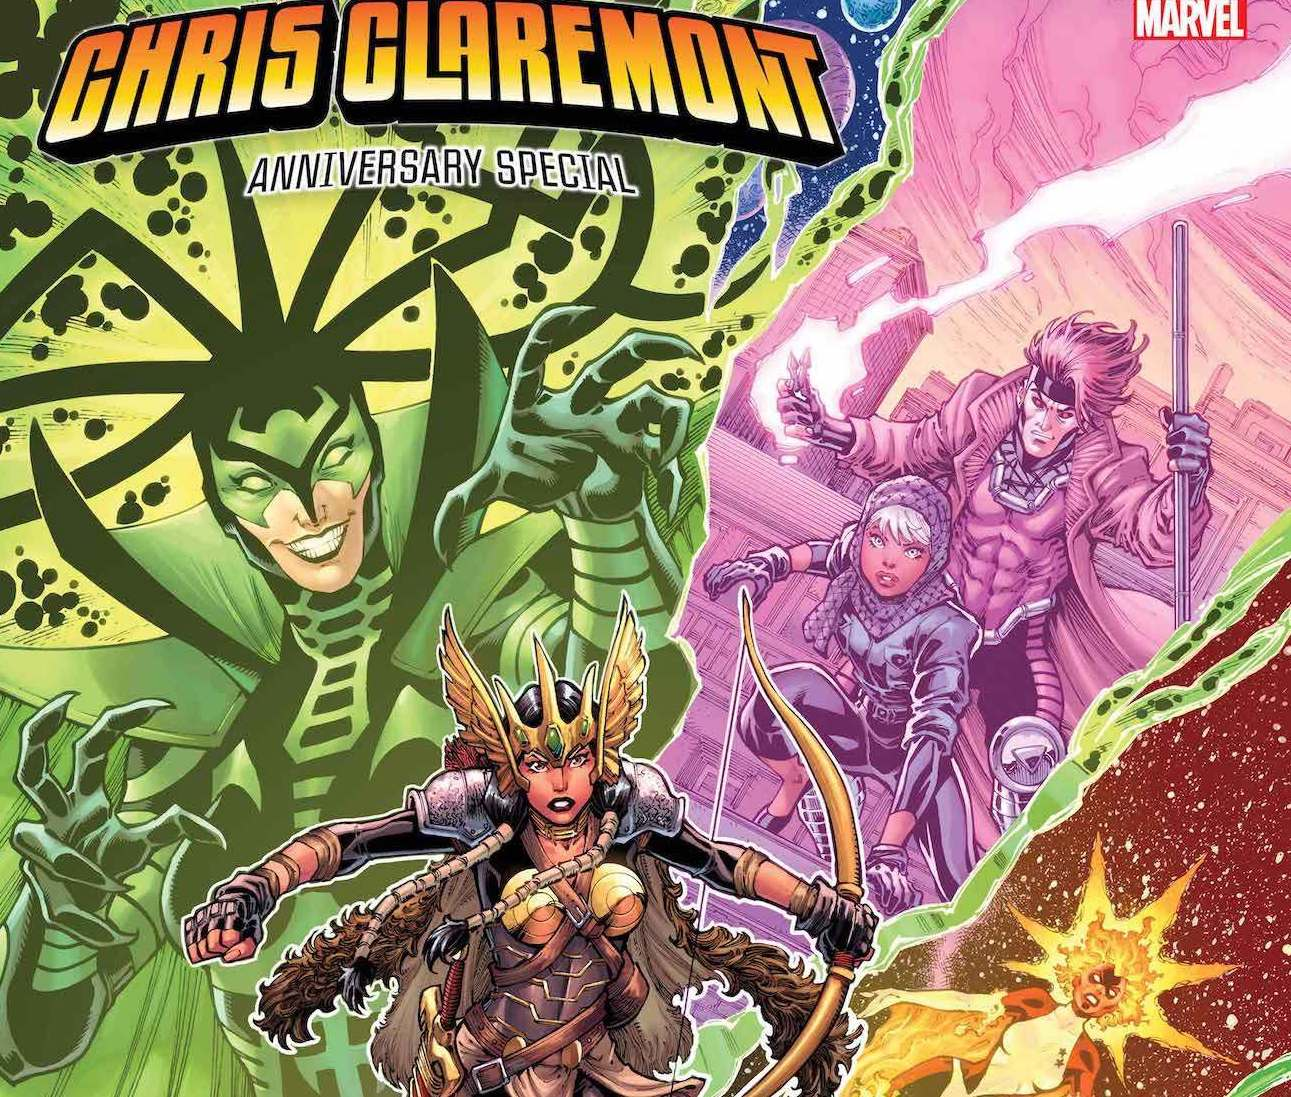 Marvel First Look: Chris Claremont Anniversary Special featuring art by Todd Nauck